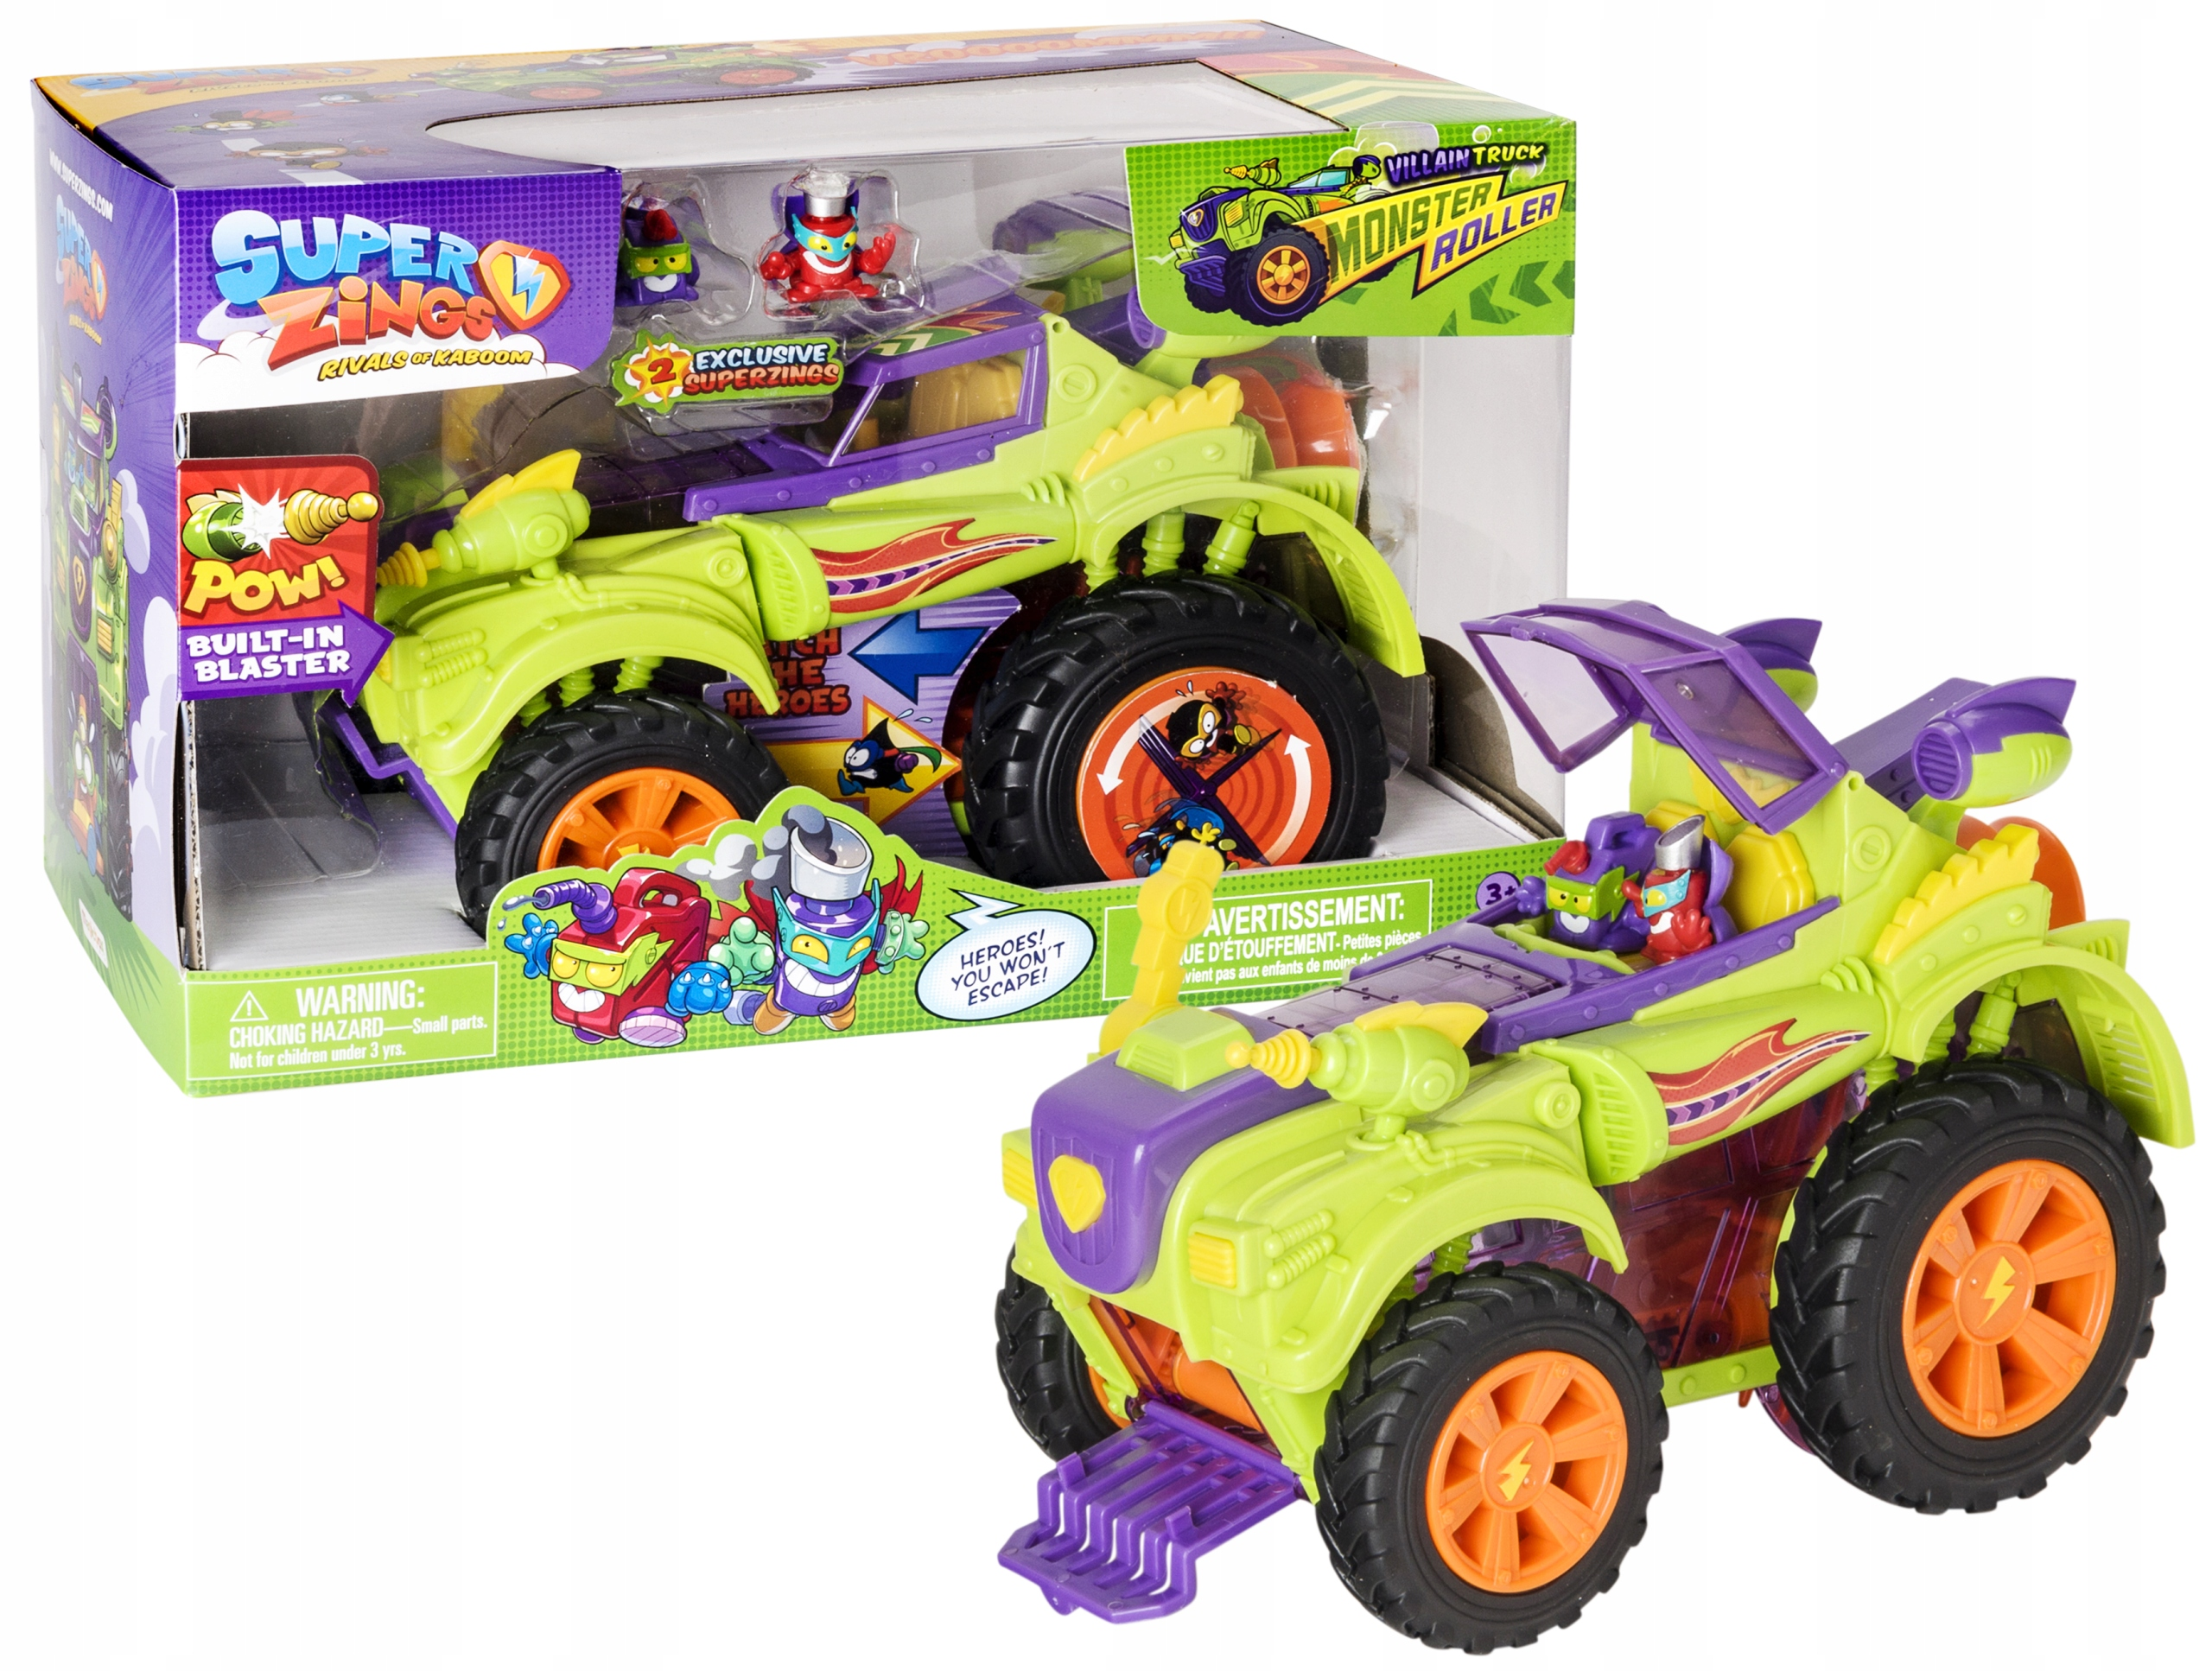 Superzings VOZIDLA VILLAIN TRUCK MONSTER ROLLER